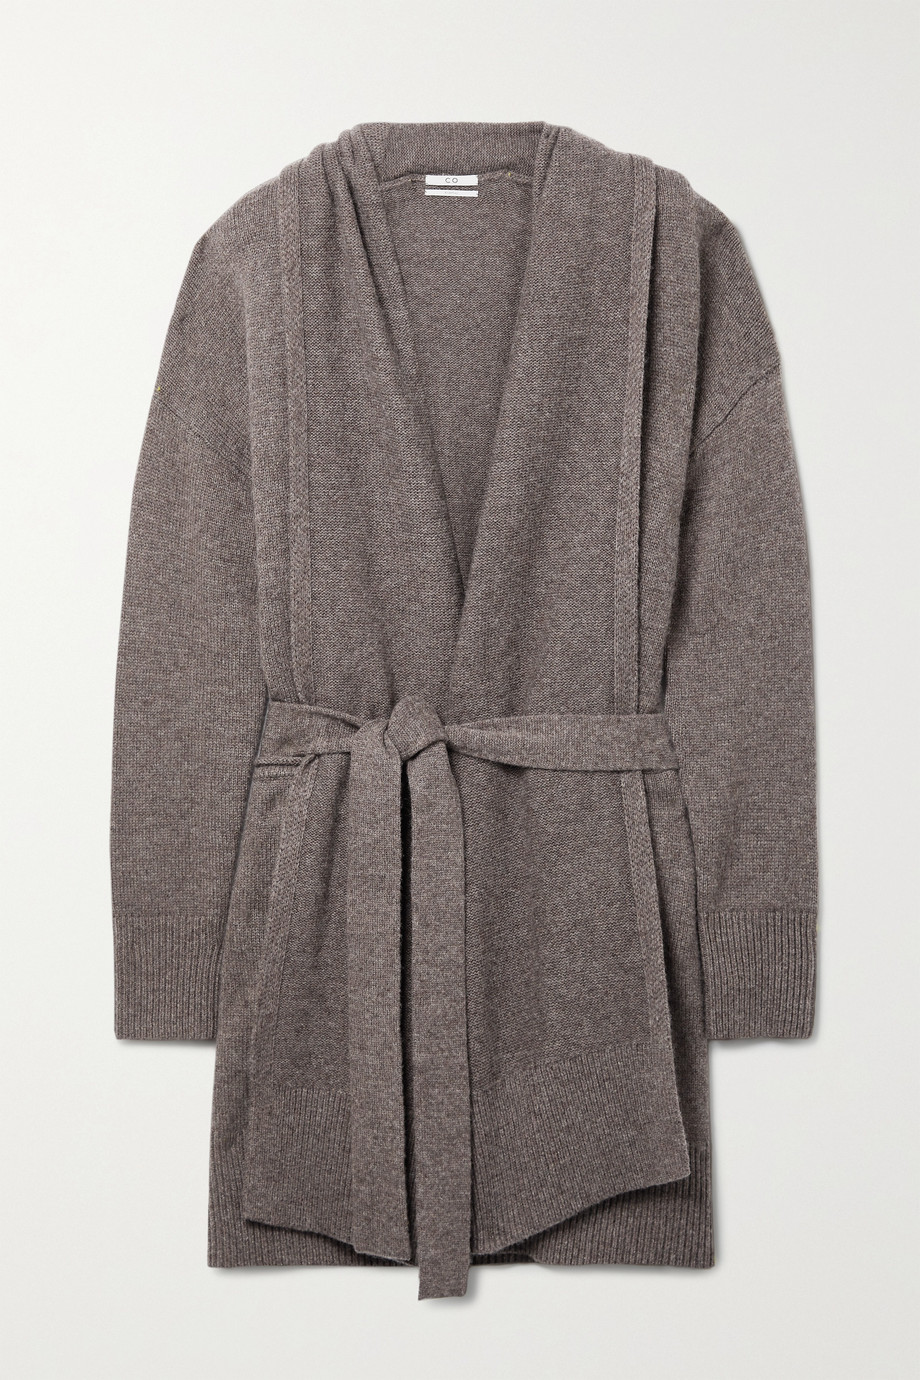 CO Belted wool and cashmere-blend cardigan